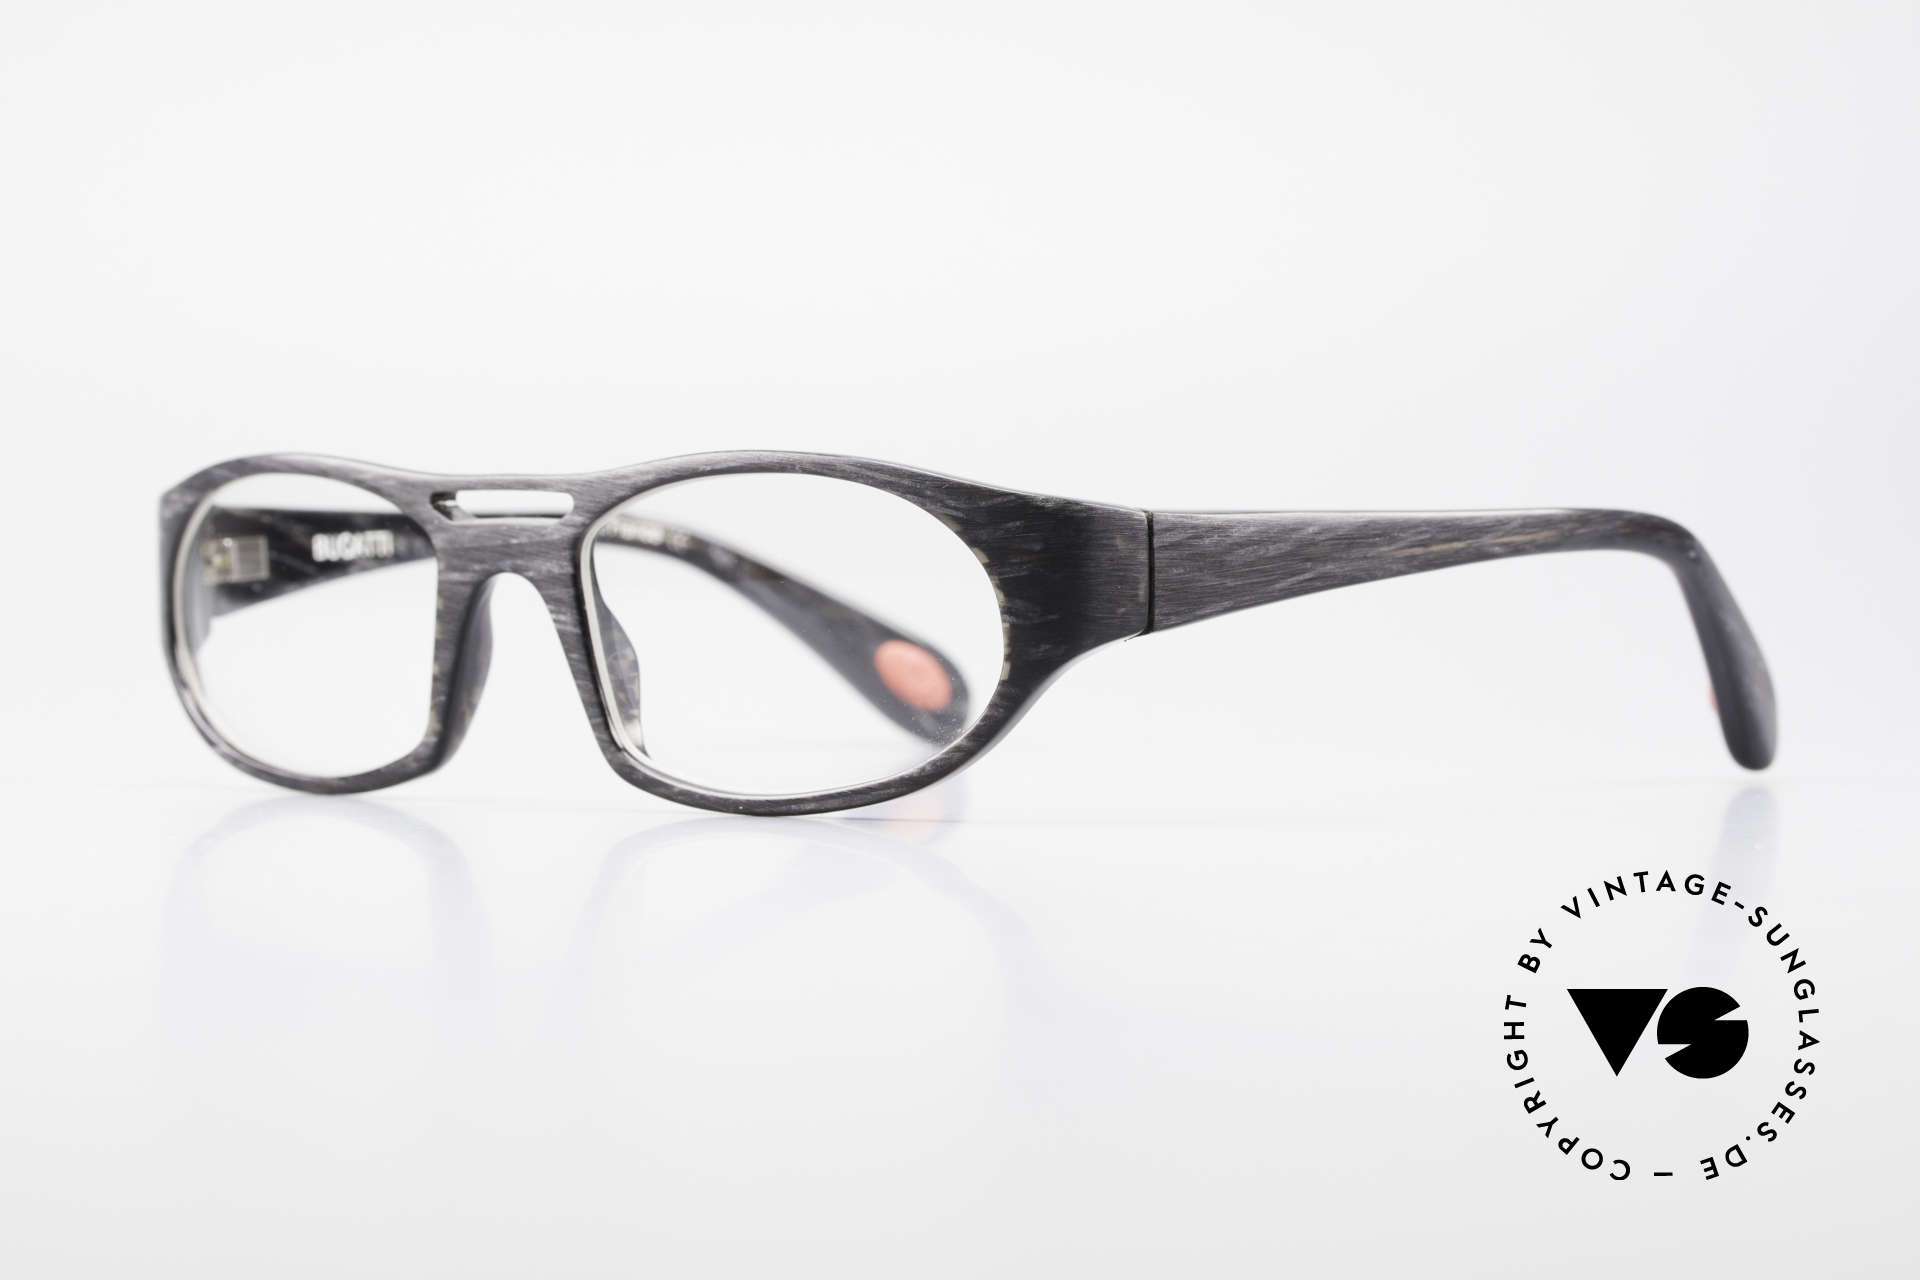 Bugatti 220 XLarge Designer Luxury Frame, 1. class wearing comfort due to spring hinges, Made for Men